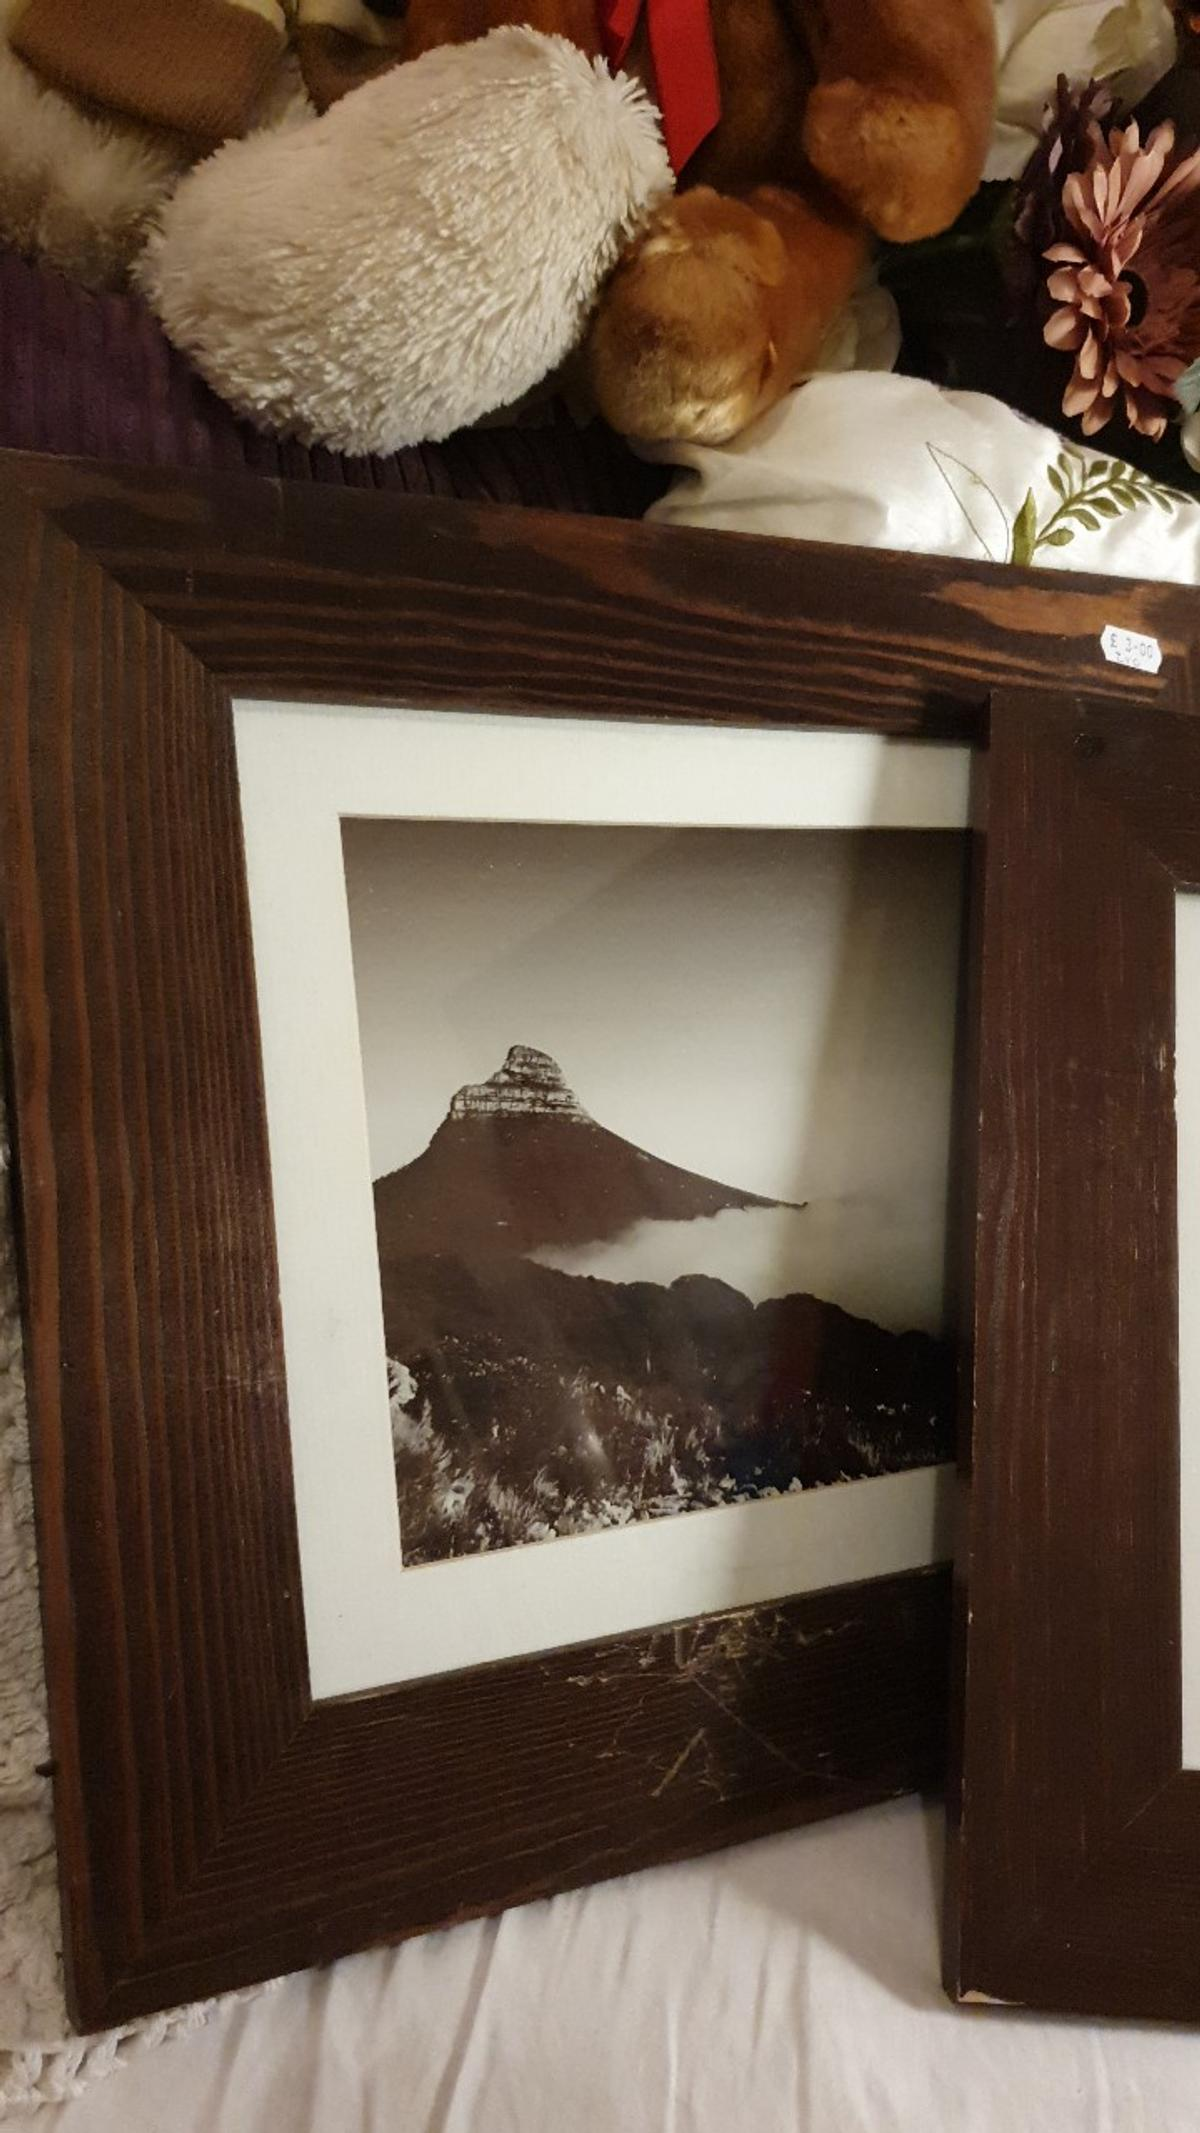 Frames need a repaint hence price 18x14 inches